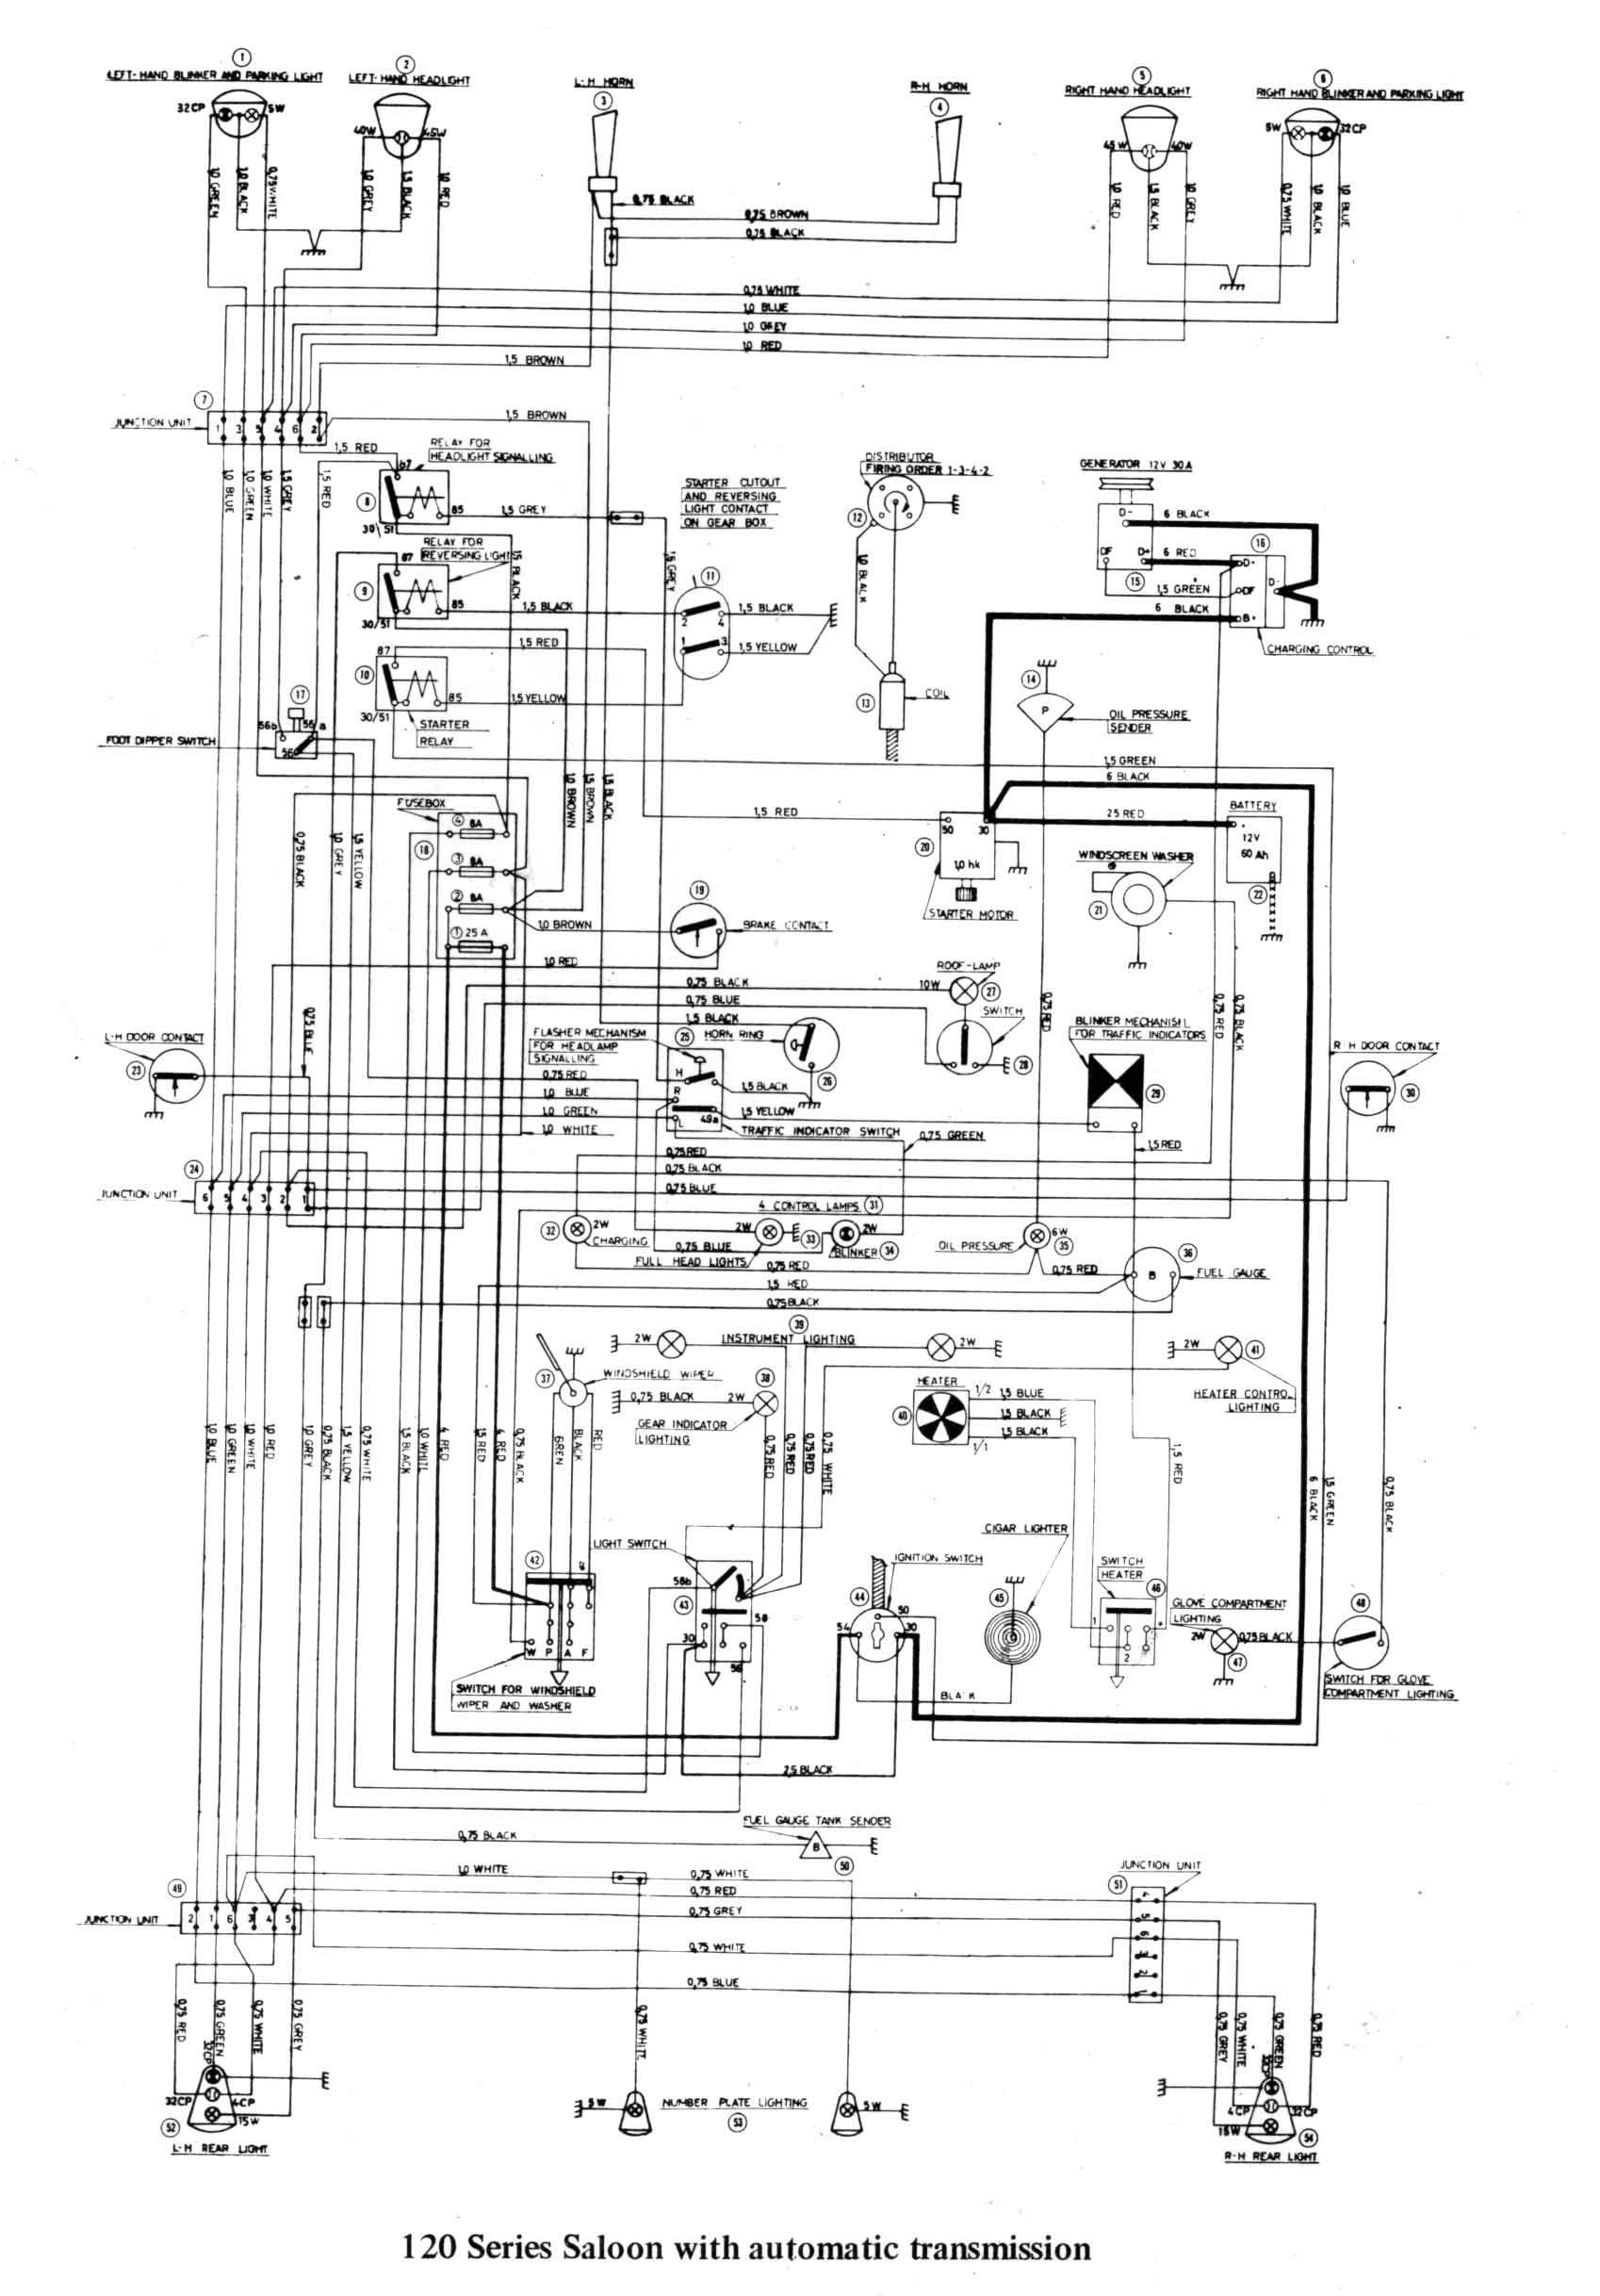 Mitsubishi Eclipse Engine Diagram Radio Wire 2003 Passat Wiring Vw 2 0 Automatic Transmission Schematic Sw Em Of